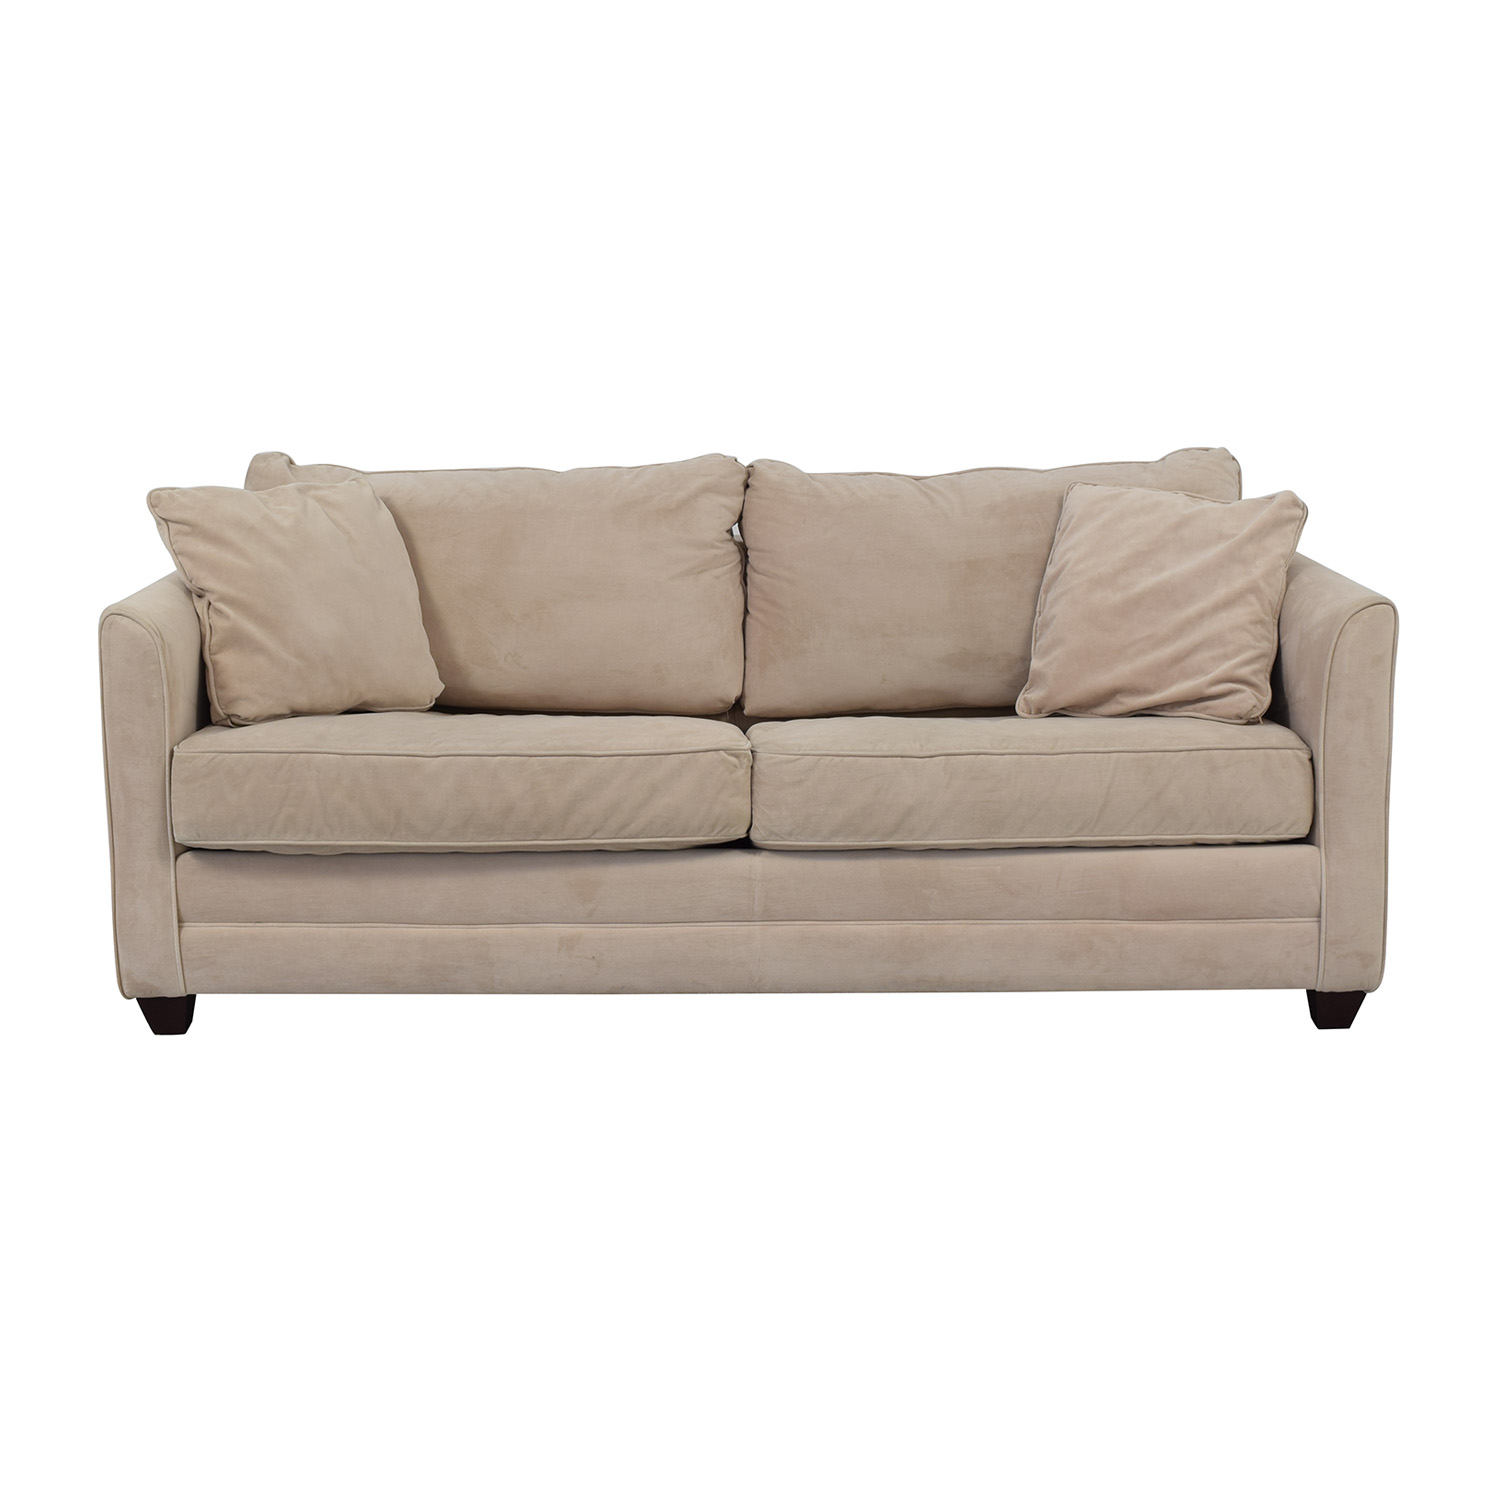 Jennifer Furniture Tilly Queen Sleeper Sofa / Sofa Beds